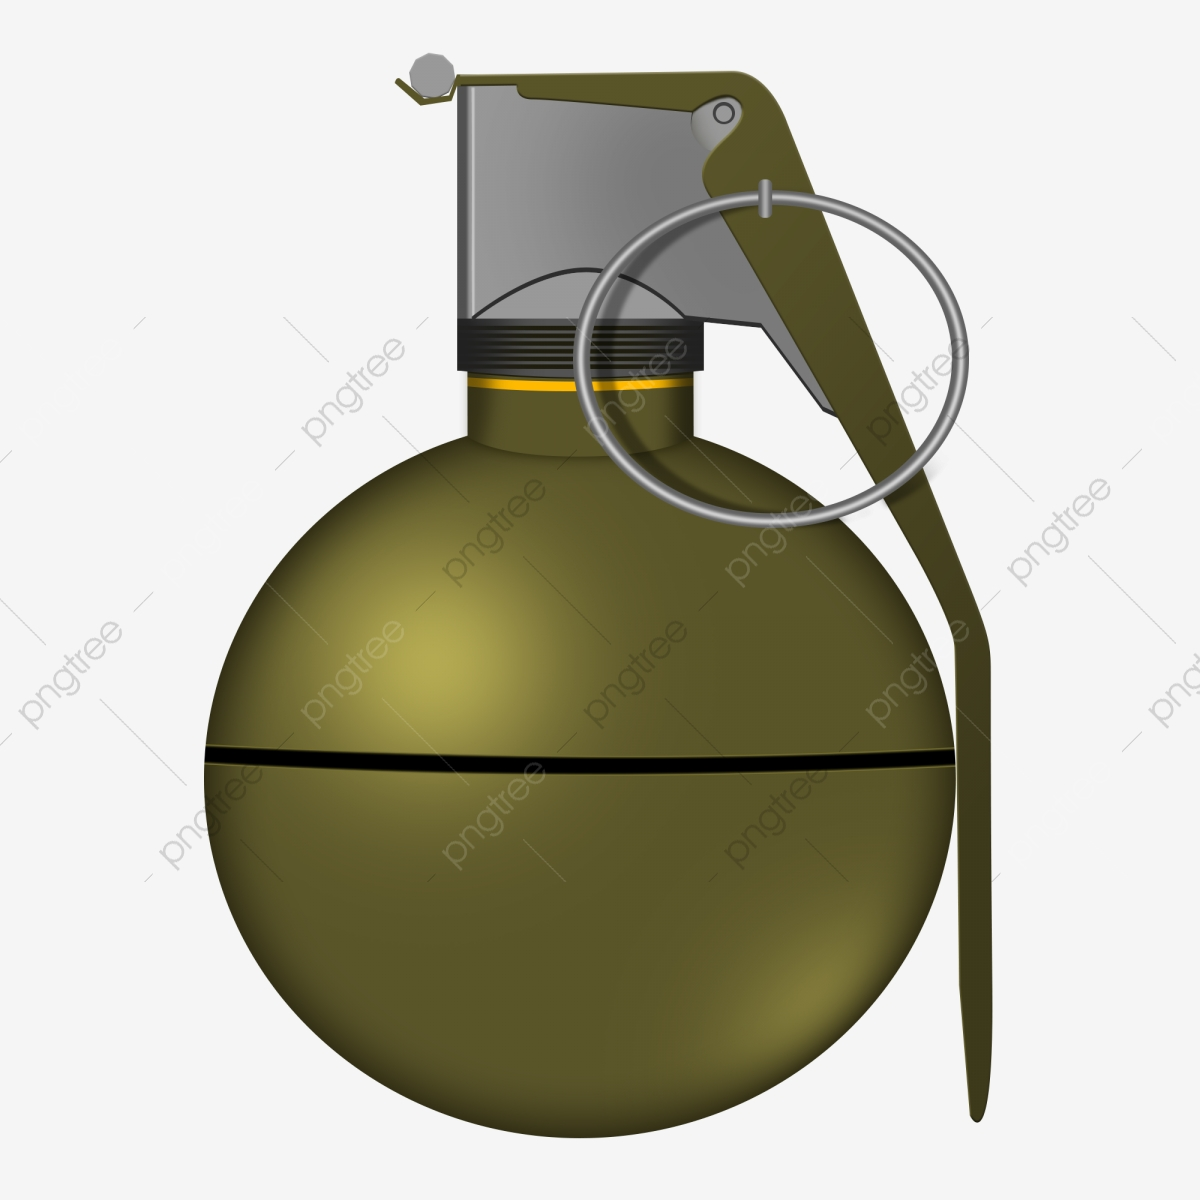 3d stereo survival eat chicken game props grenade bomb 3d stereo grenade jedi survival png transparent clipart image and psd file for free download https pngtree com freepng 3d stereo survival eat chicken game props grenade bomb 4067881 html